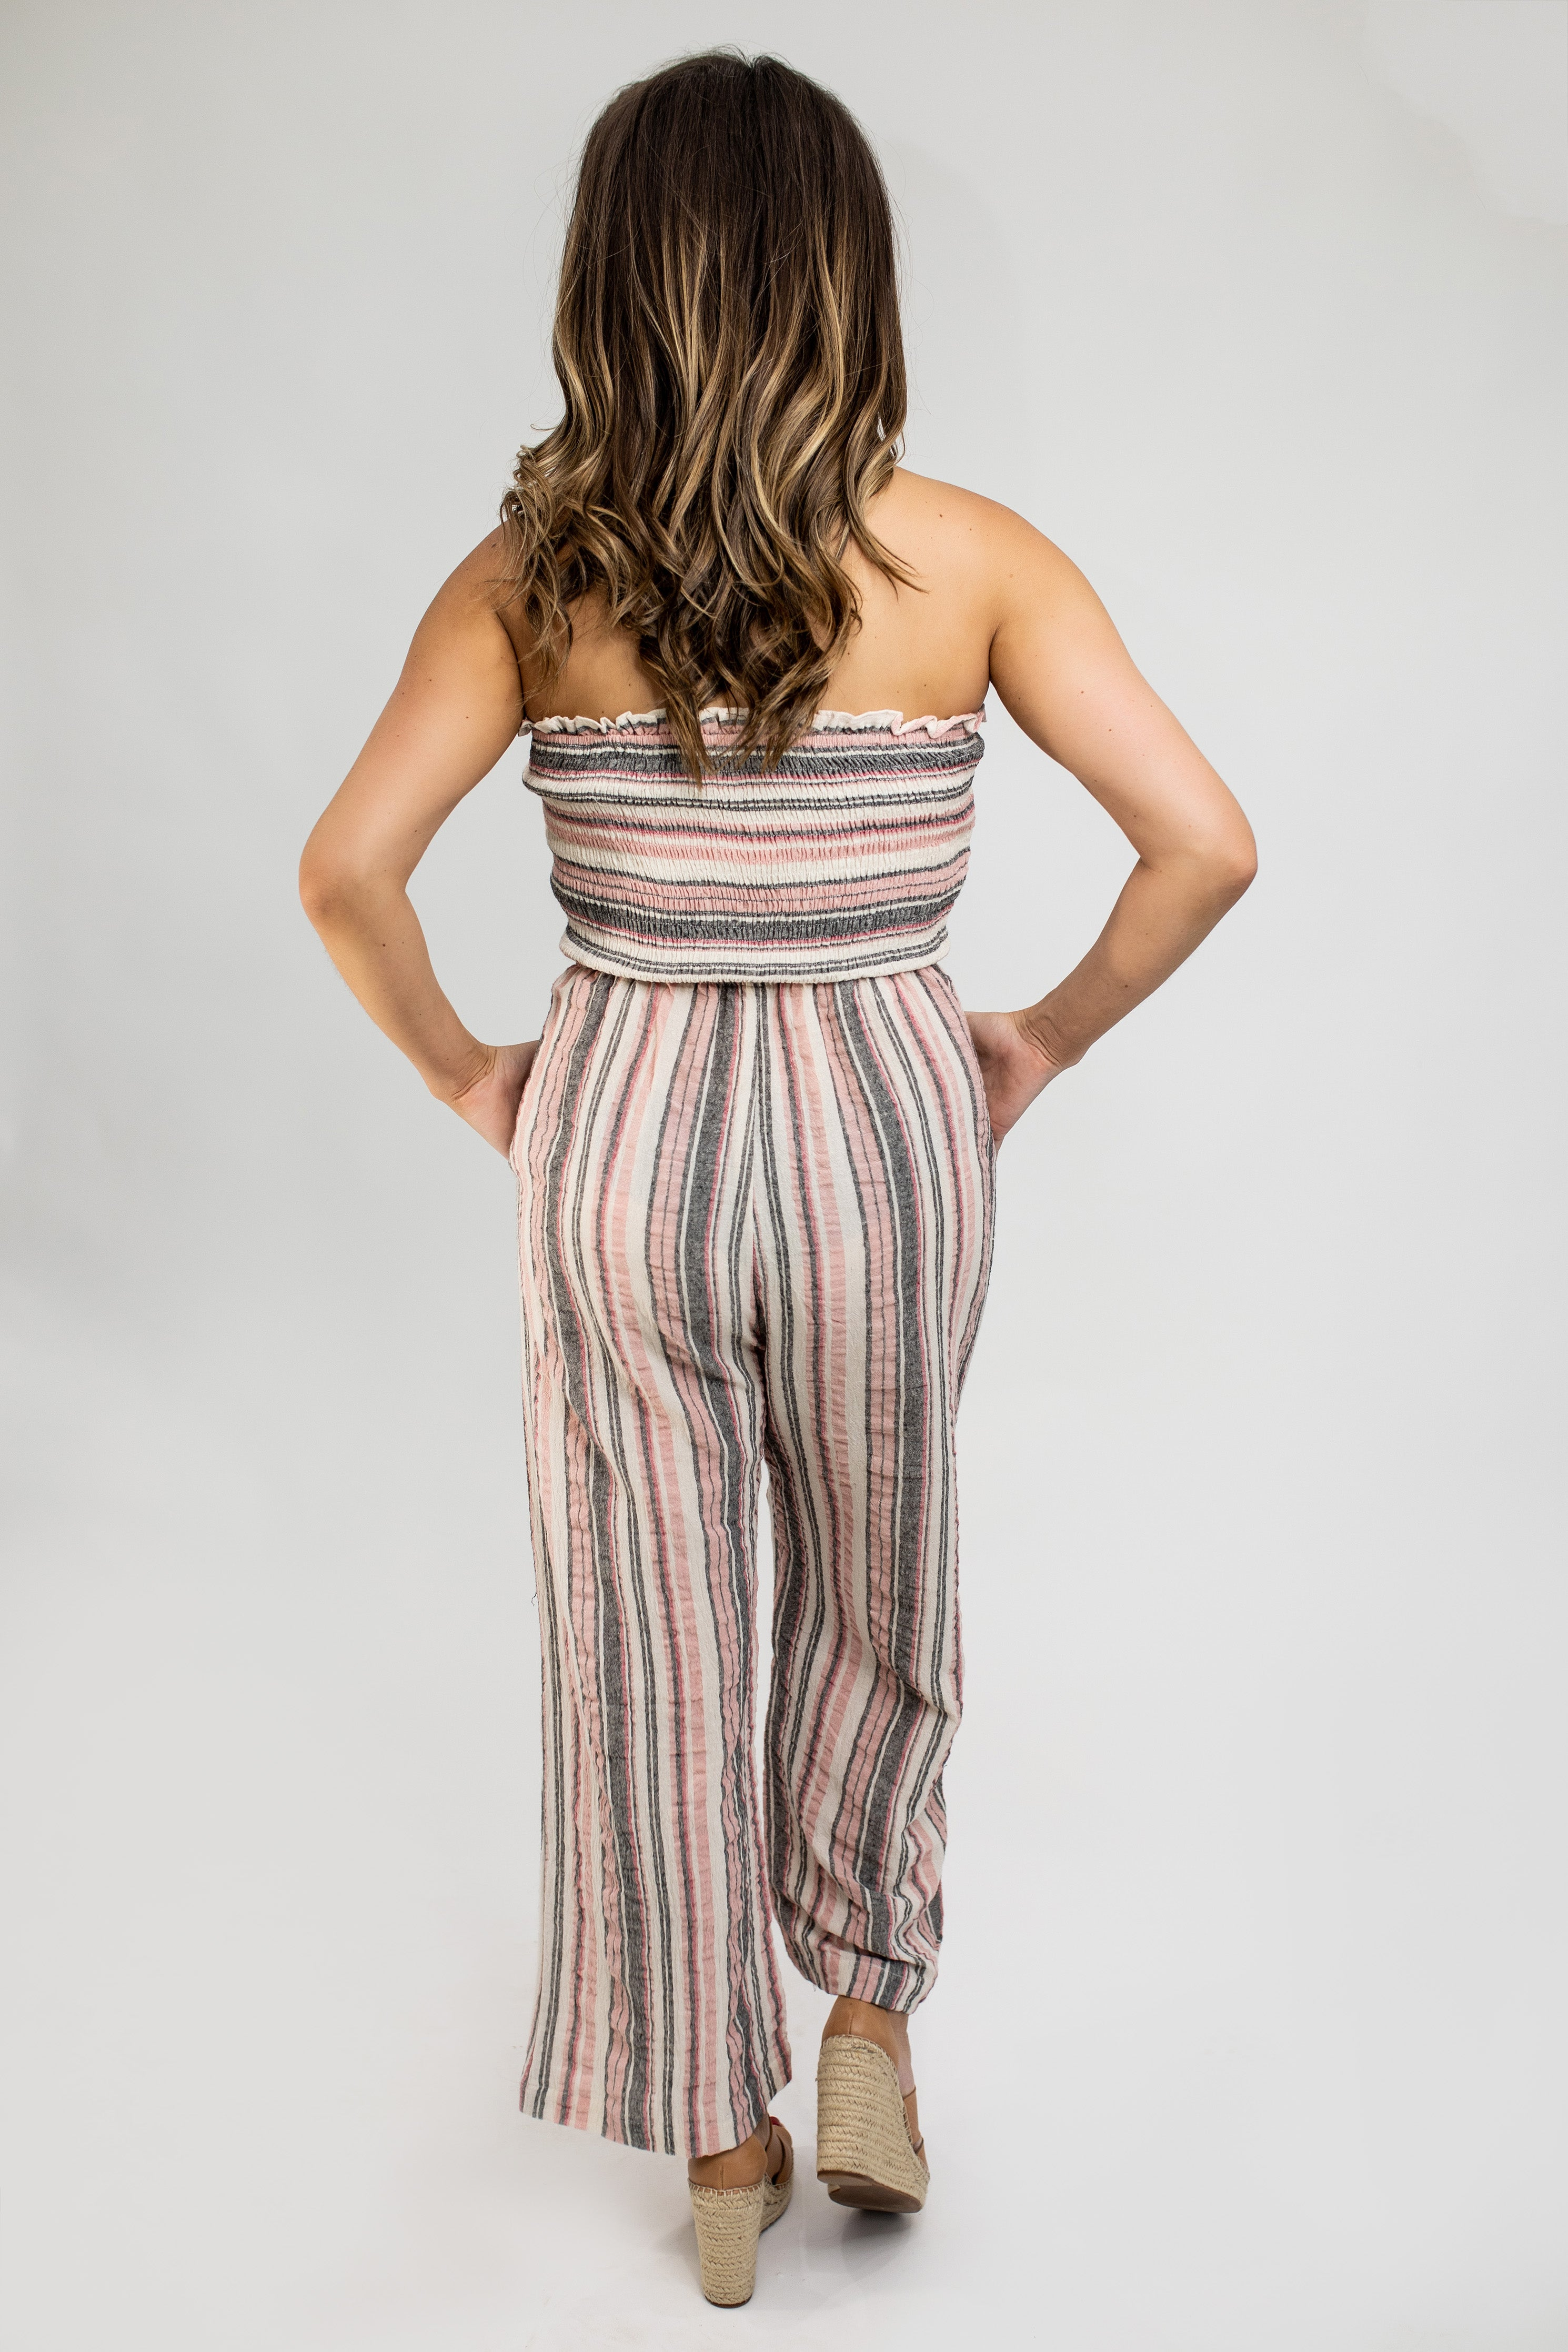 Striped Rose Strapless Palazzo Jumpsuit - VerClare Boutique